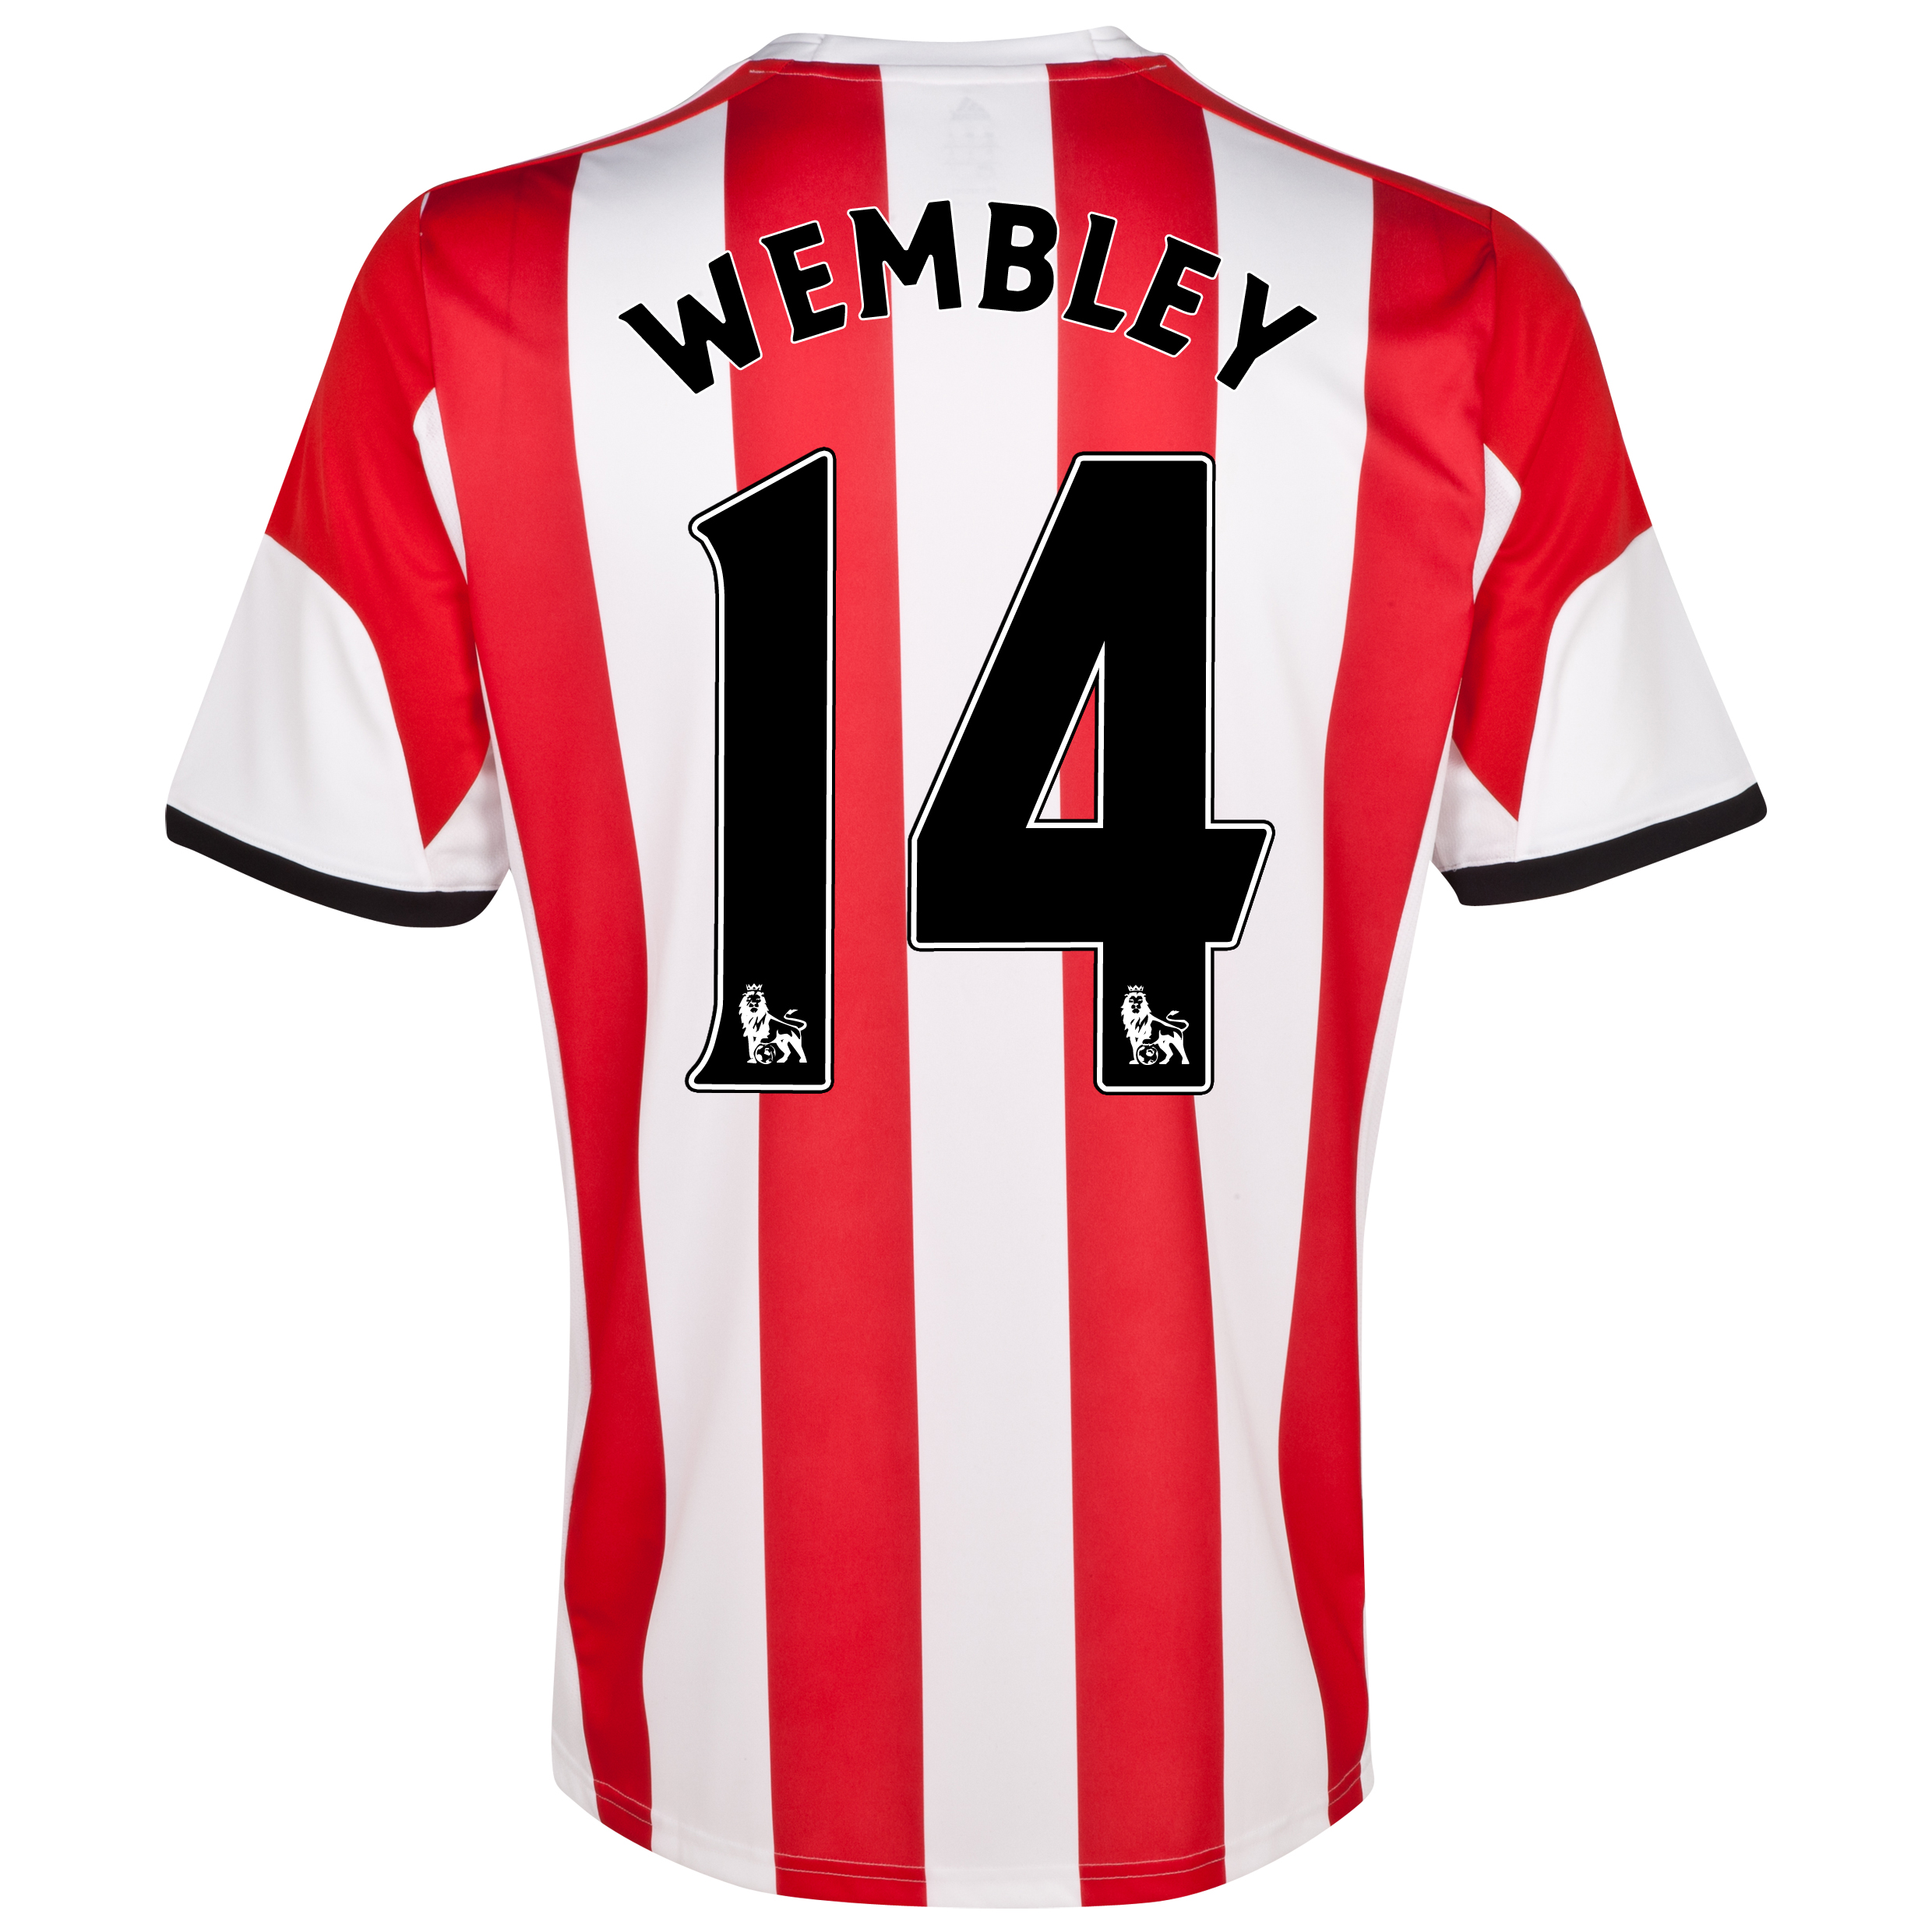 Sunderland Home Shirt 2013/14 with Wembley 14 printing